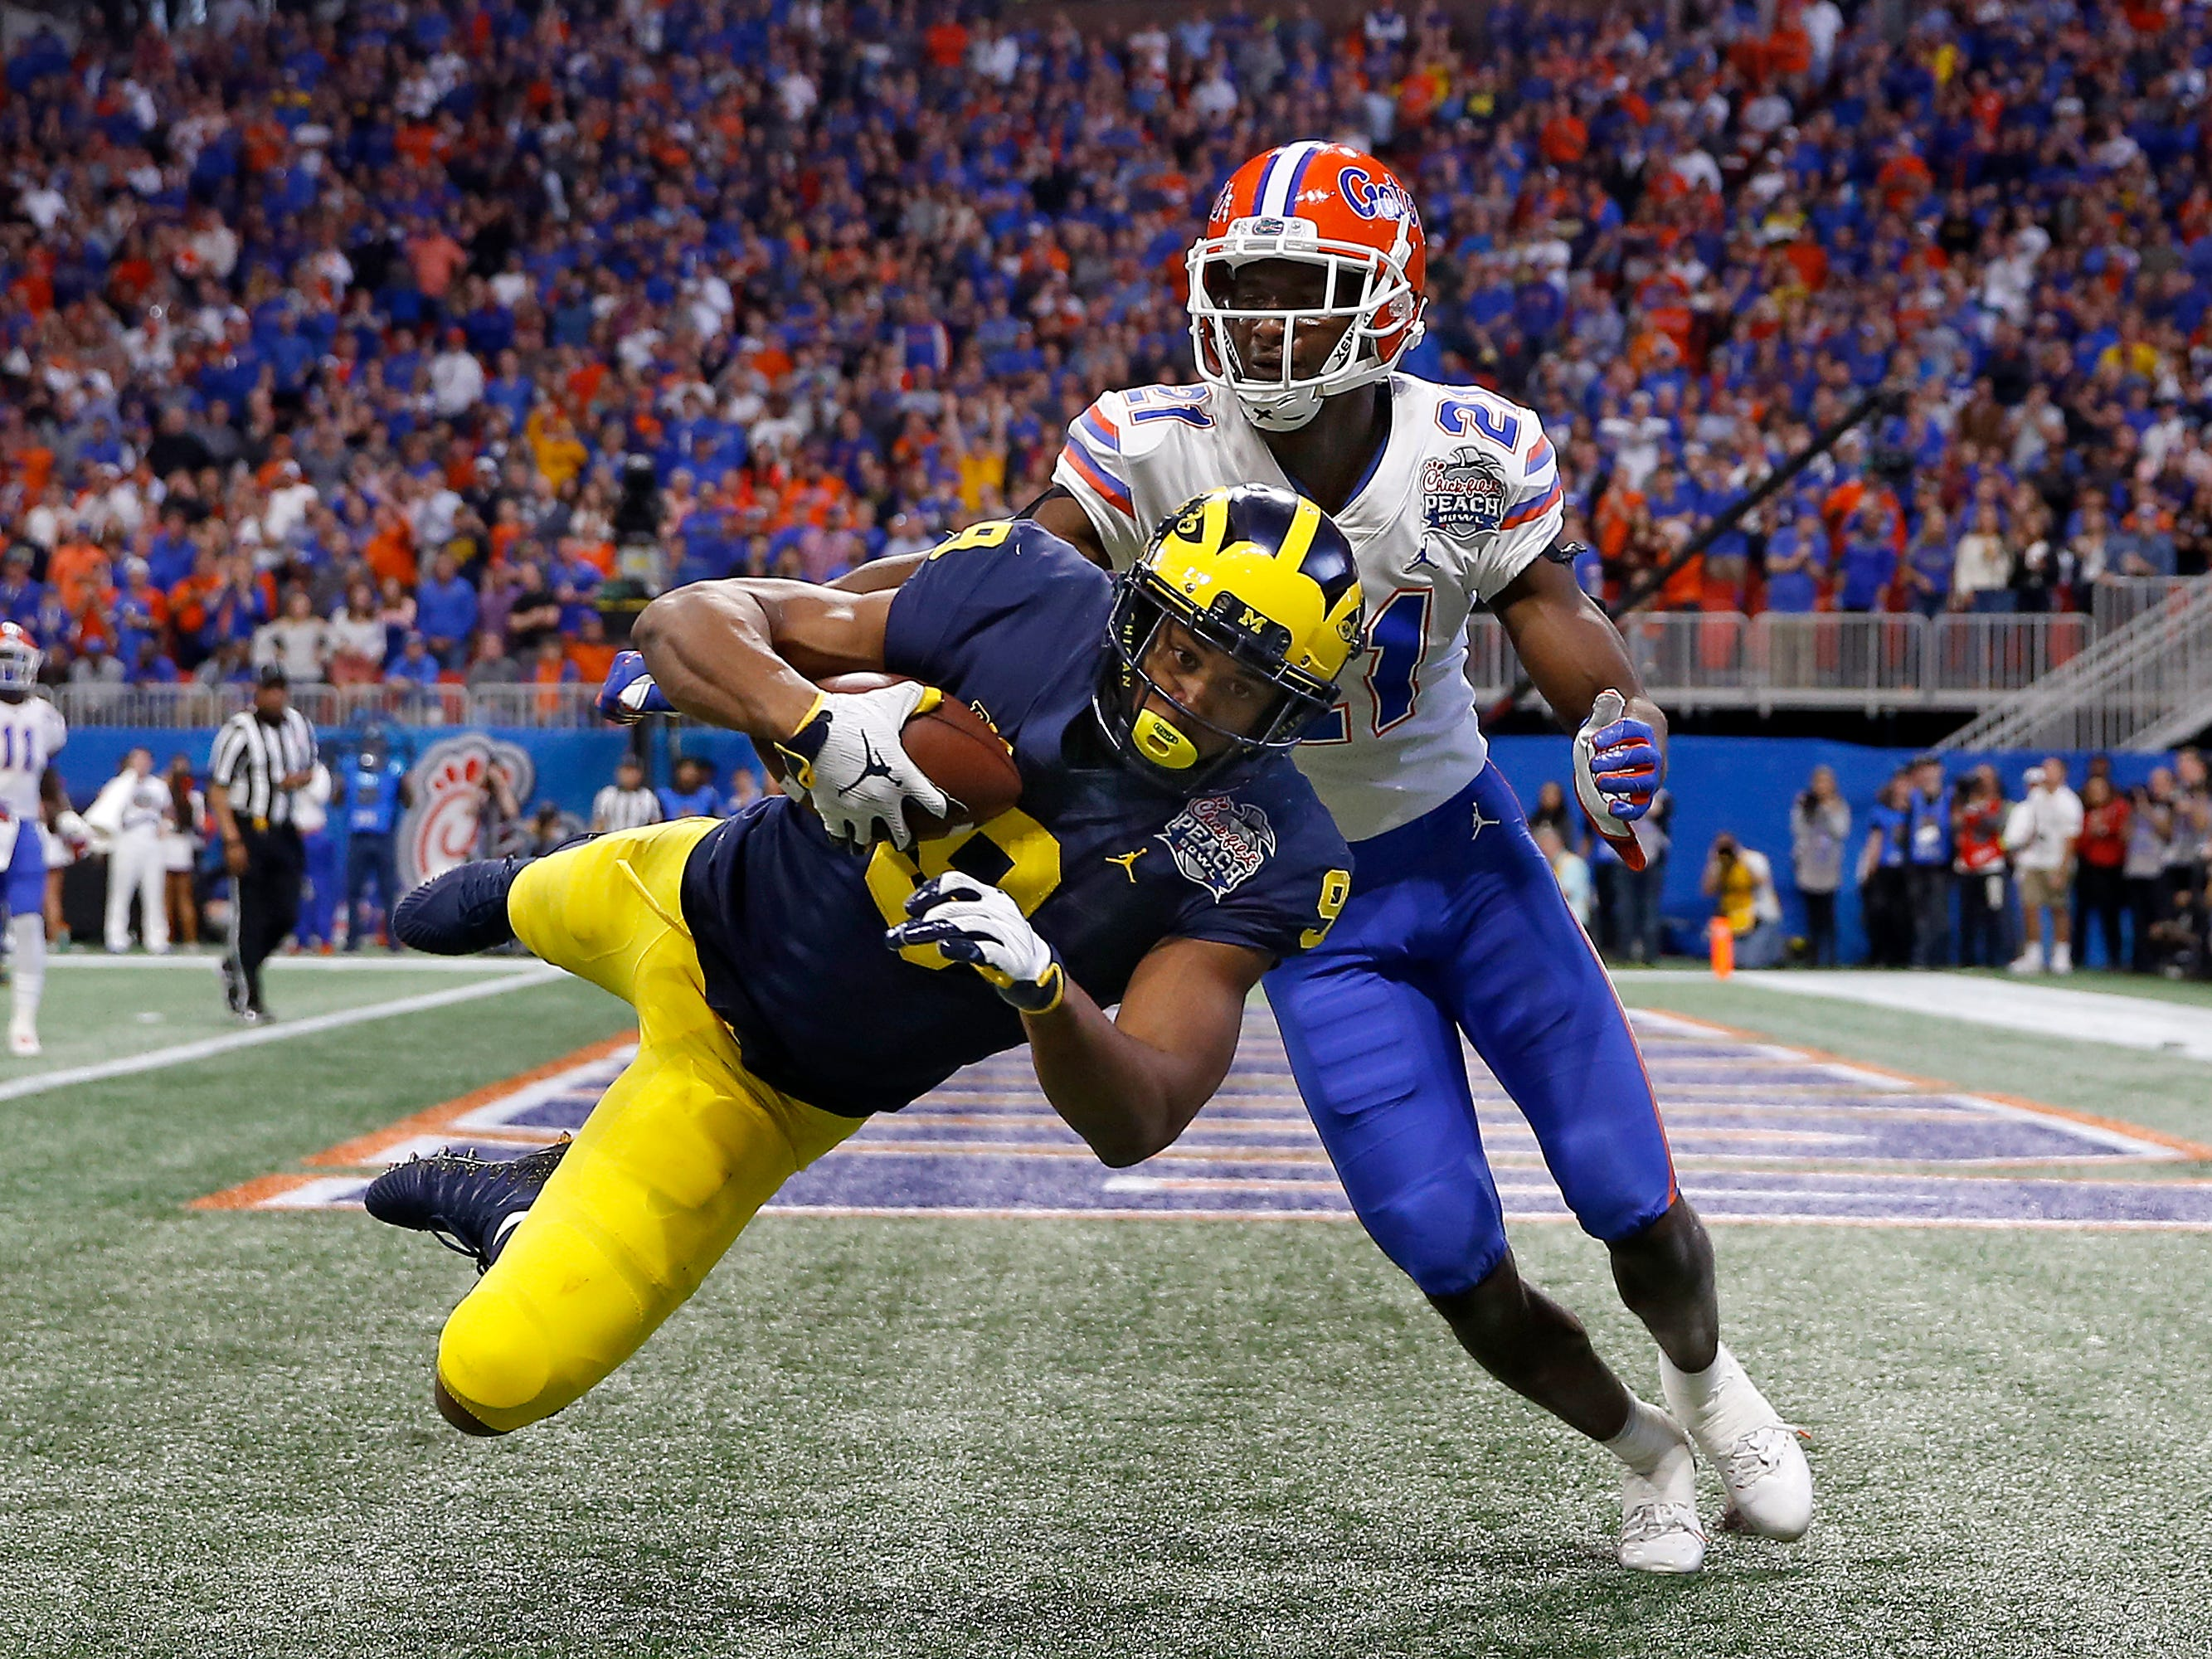 Michigan wide receiver Donovan Peoples-Jones scores a touchdown reception against Florida's Trey Dean III during the Peach Bowl on Saturday, Dec. 29, 2018, in Atlanta.